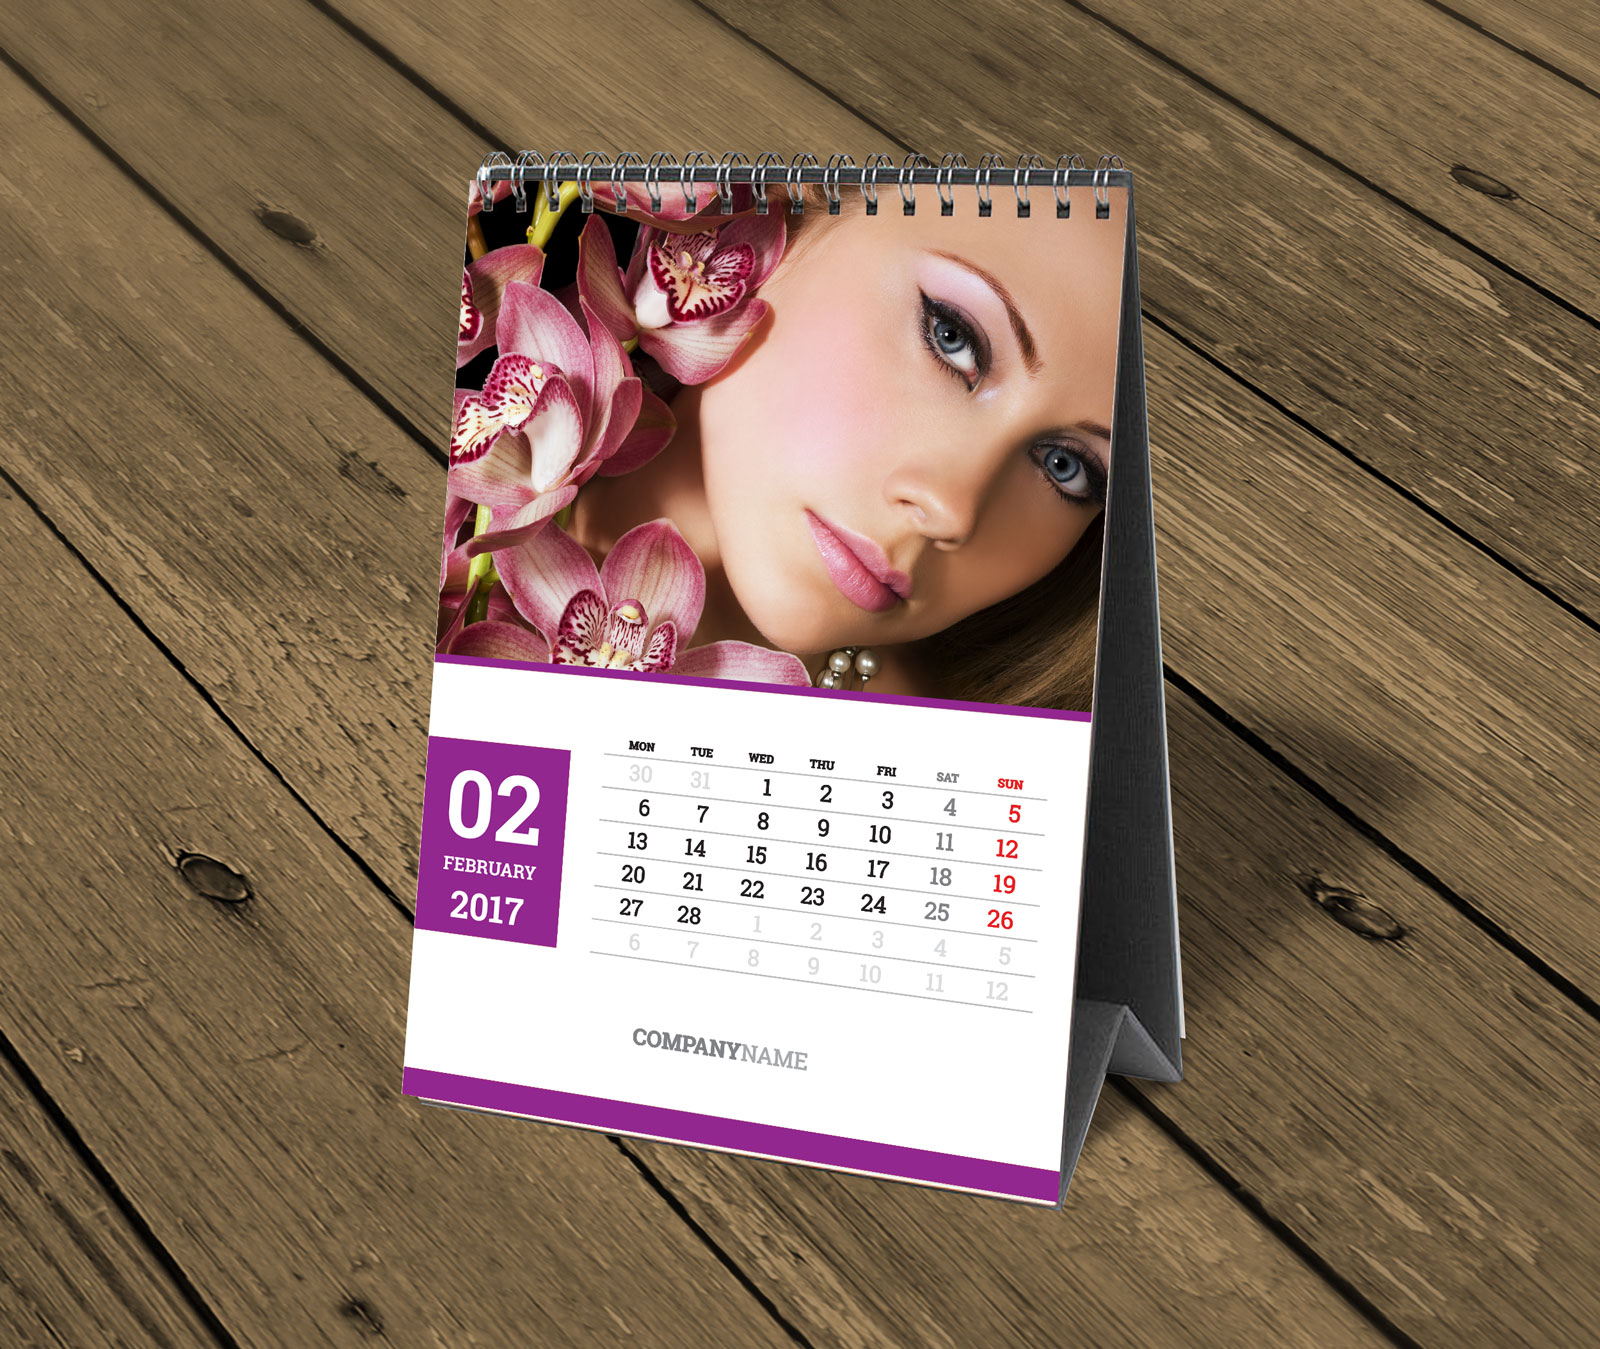 Handmade Table Calendar Designs : Custom table calendar template photo desk